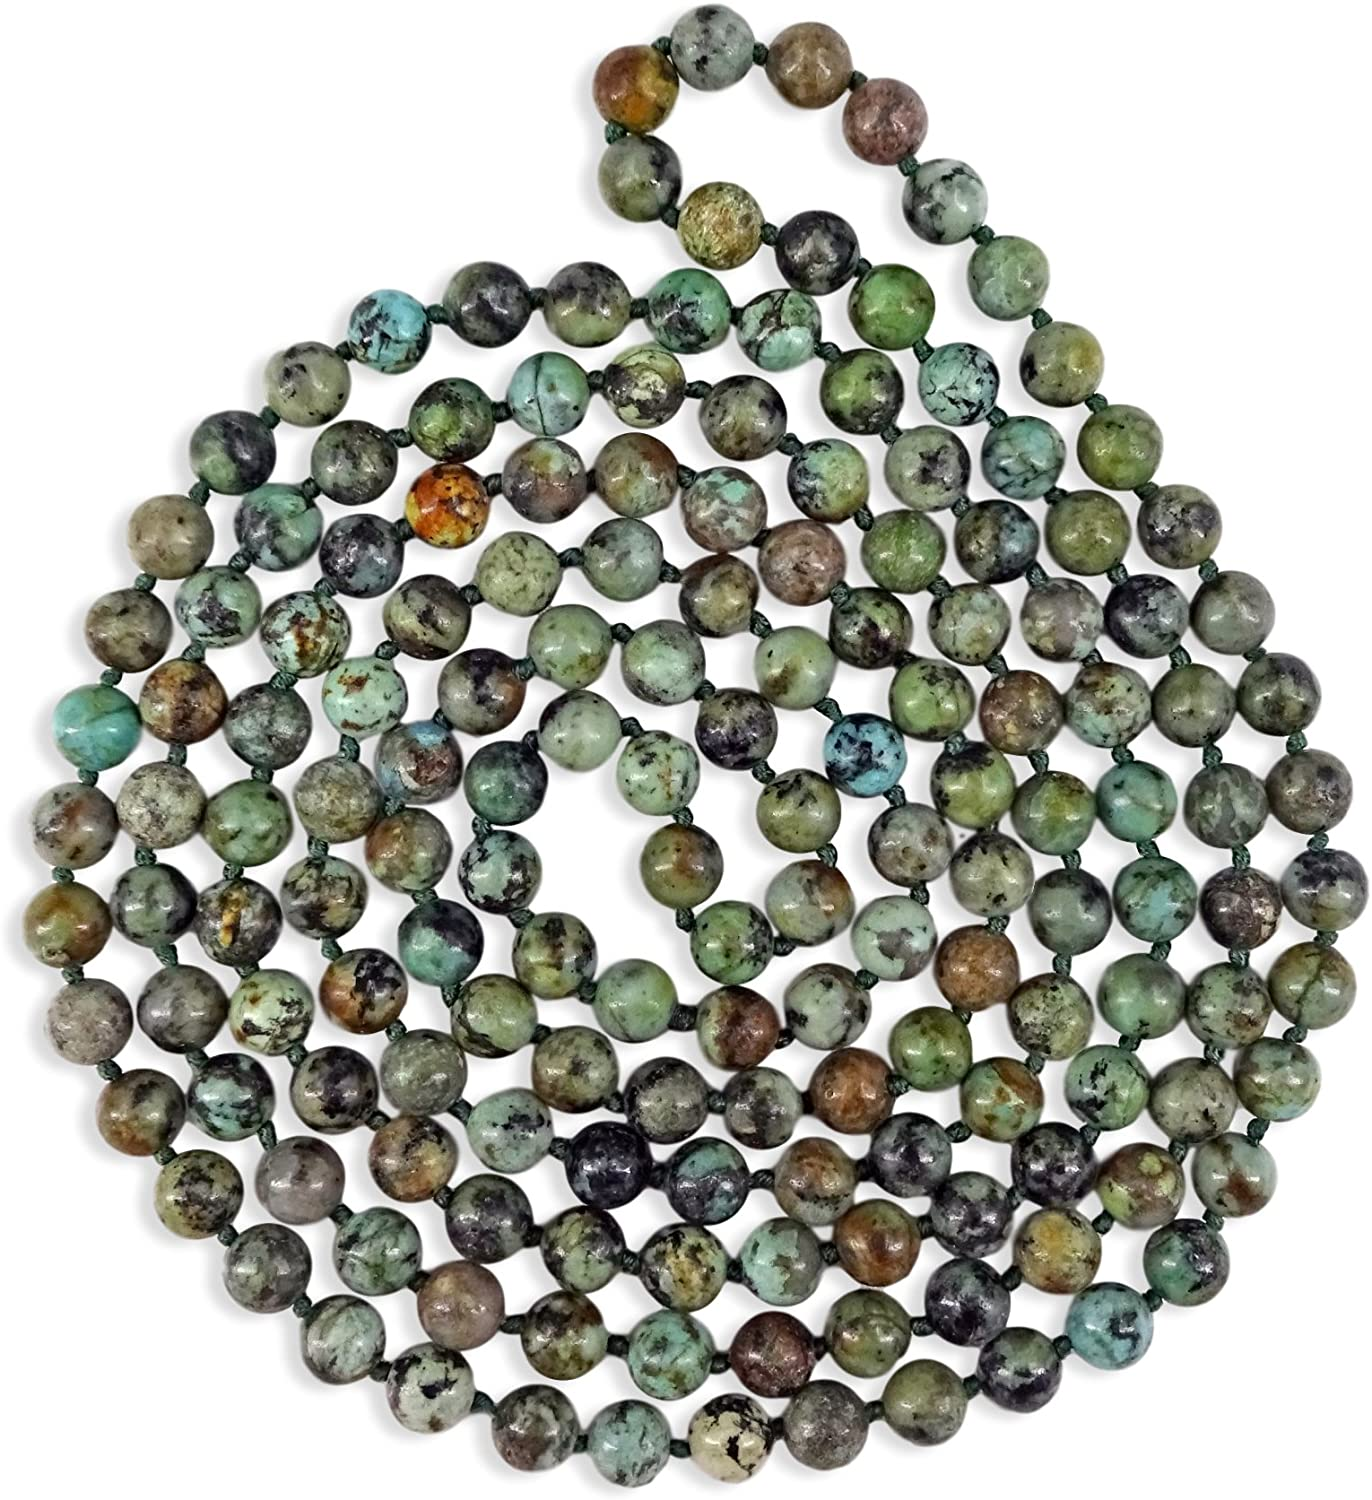 MGR MY GEMS ROCK! 60 Inch Polished Genuine Stone Multi-Layer Long Endless Infinity Beaded Necklace.